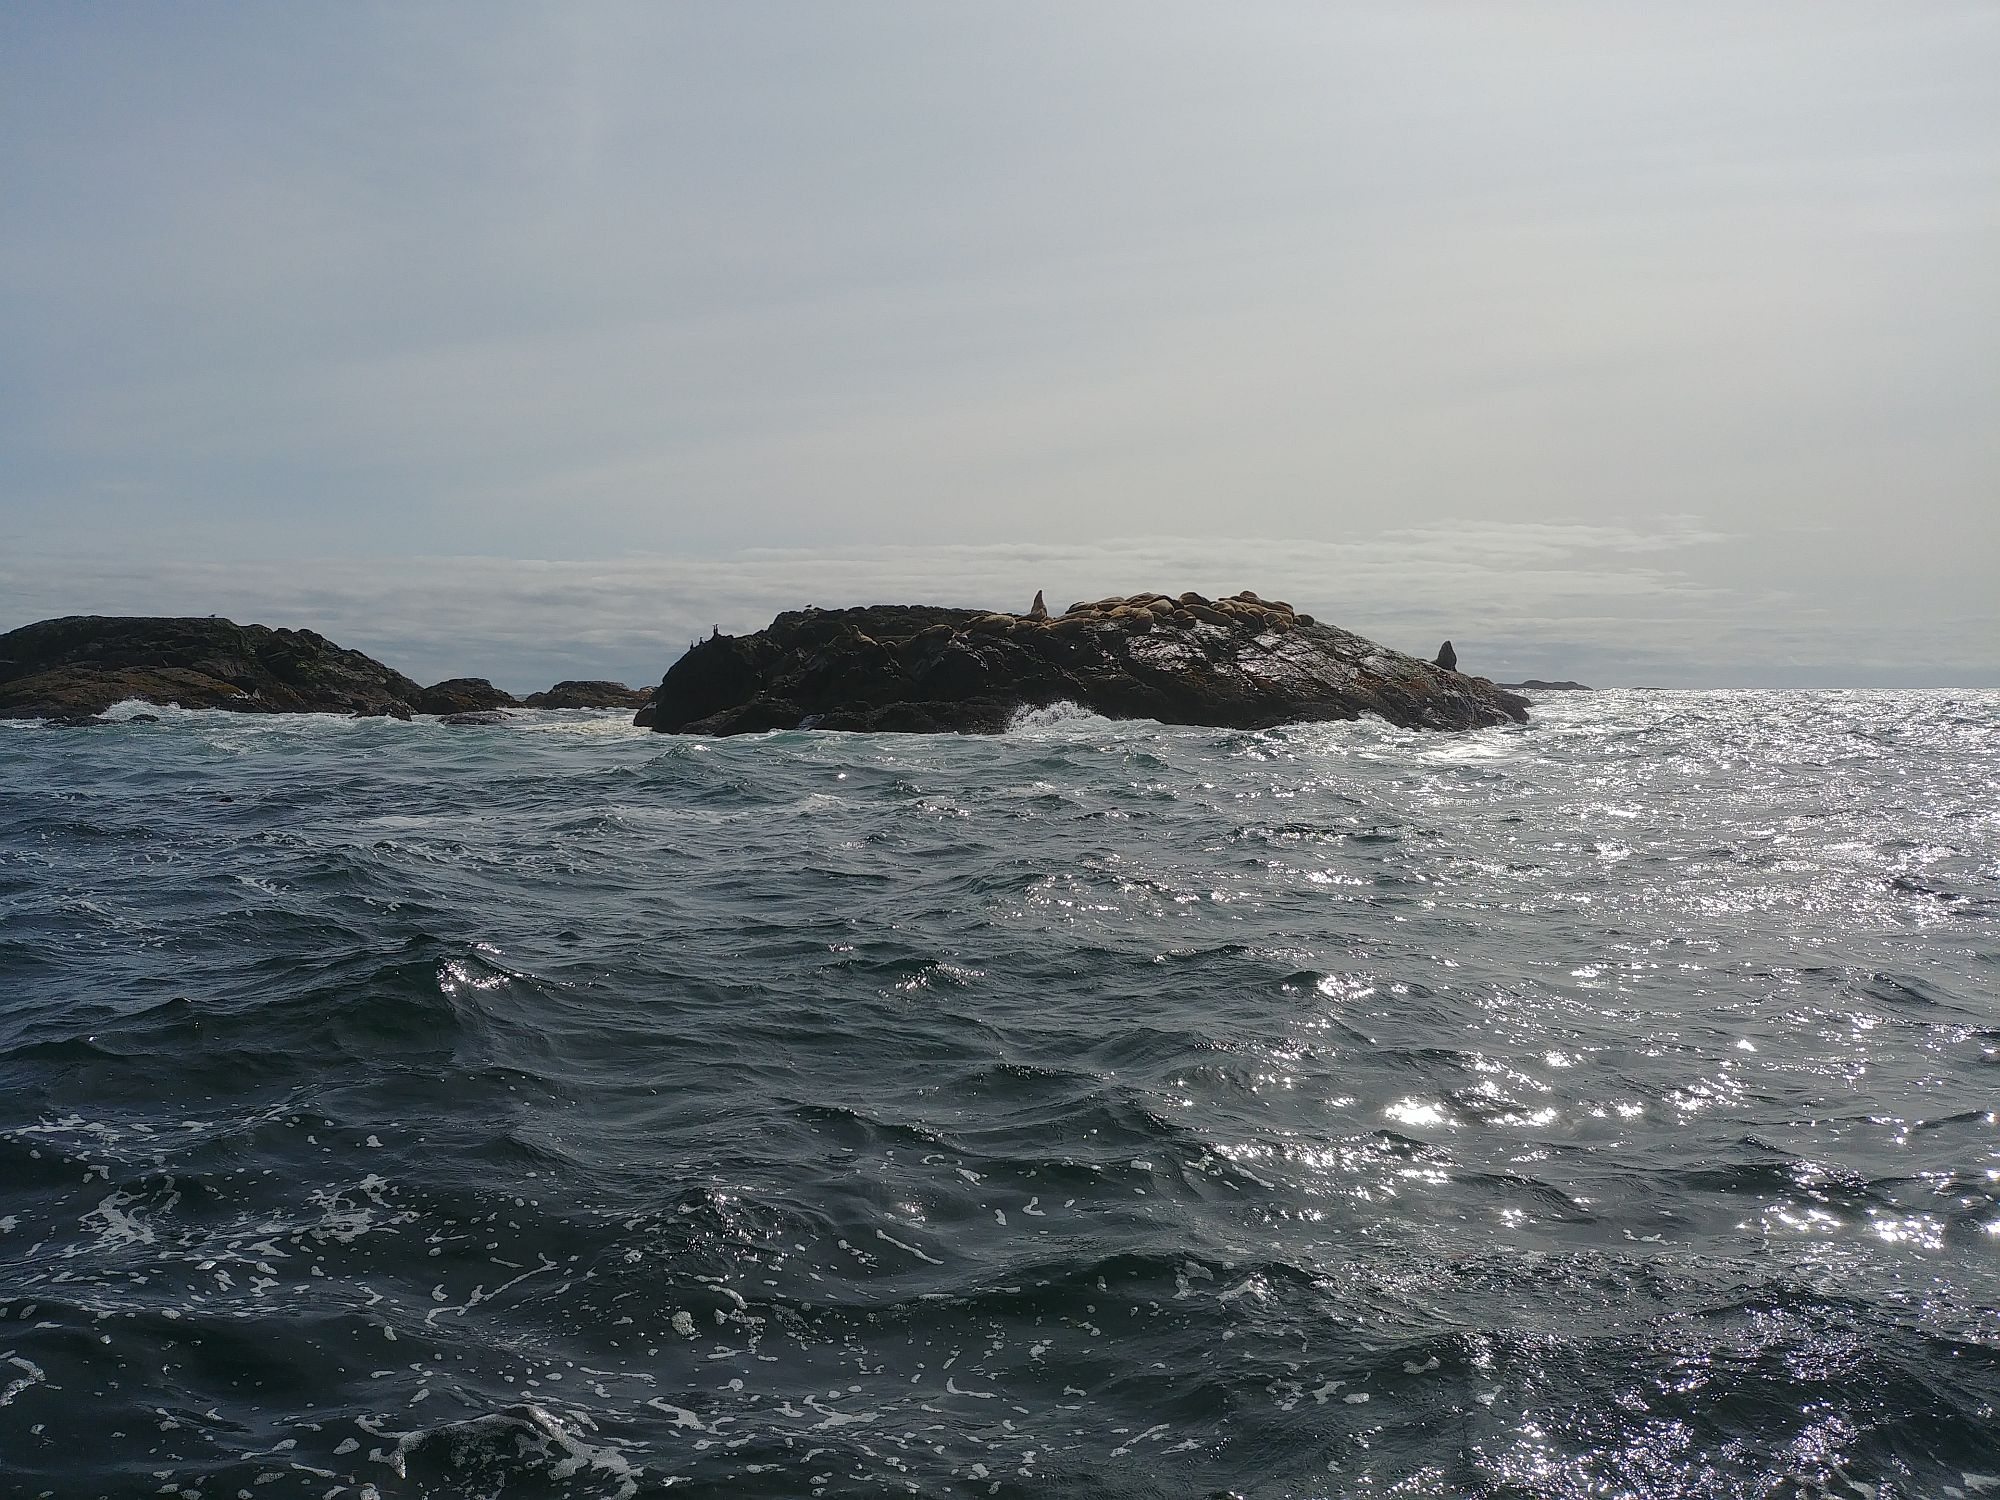 Whale watching - 04